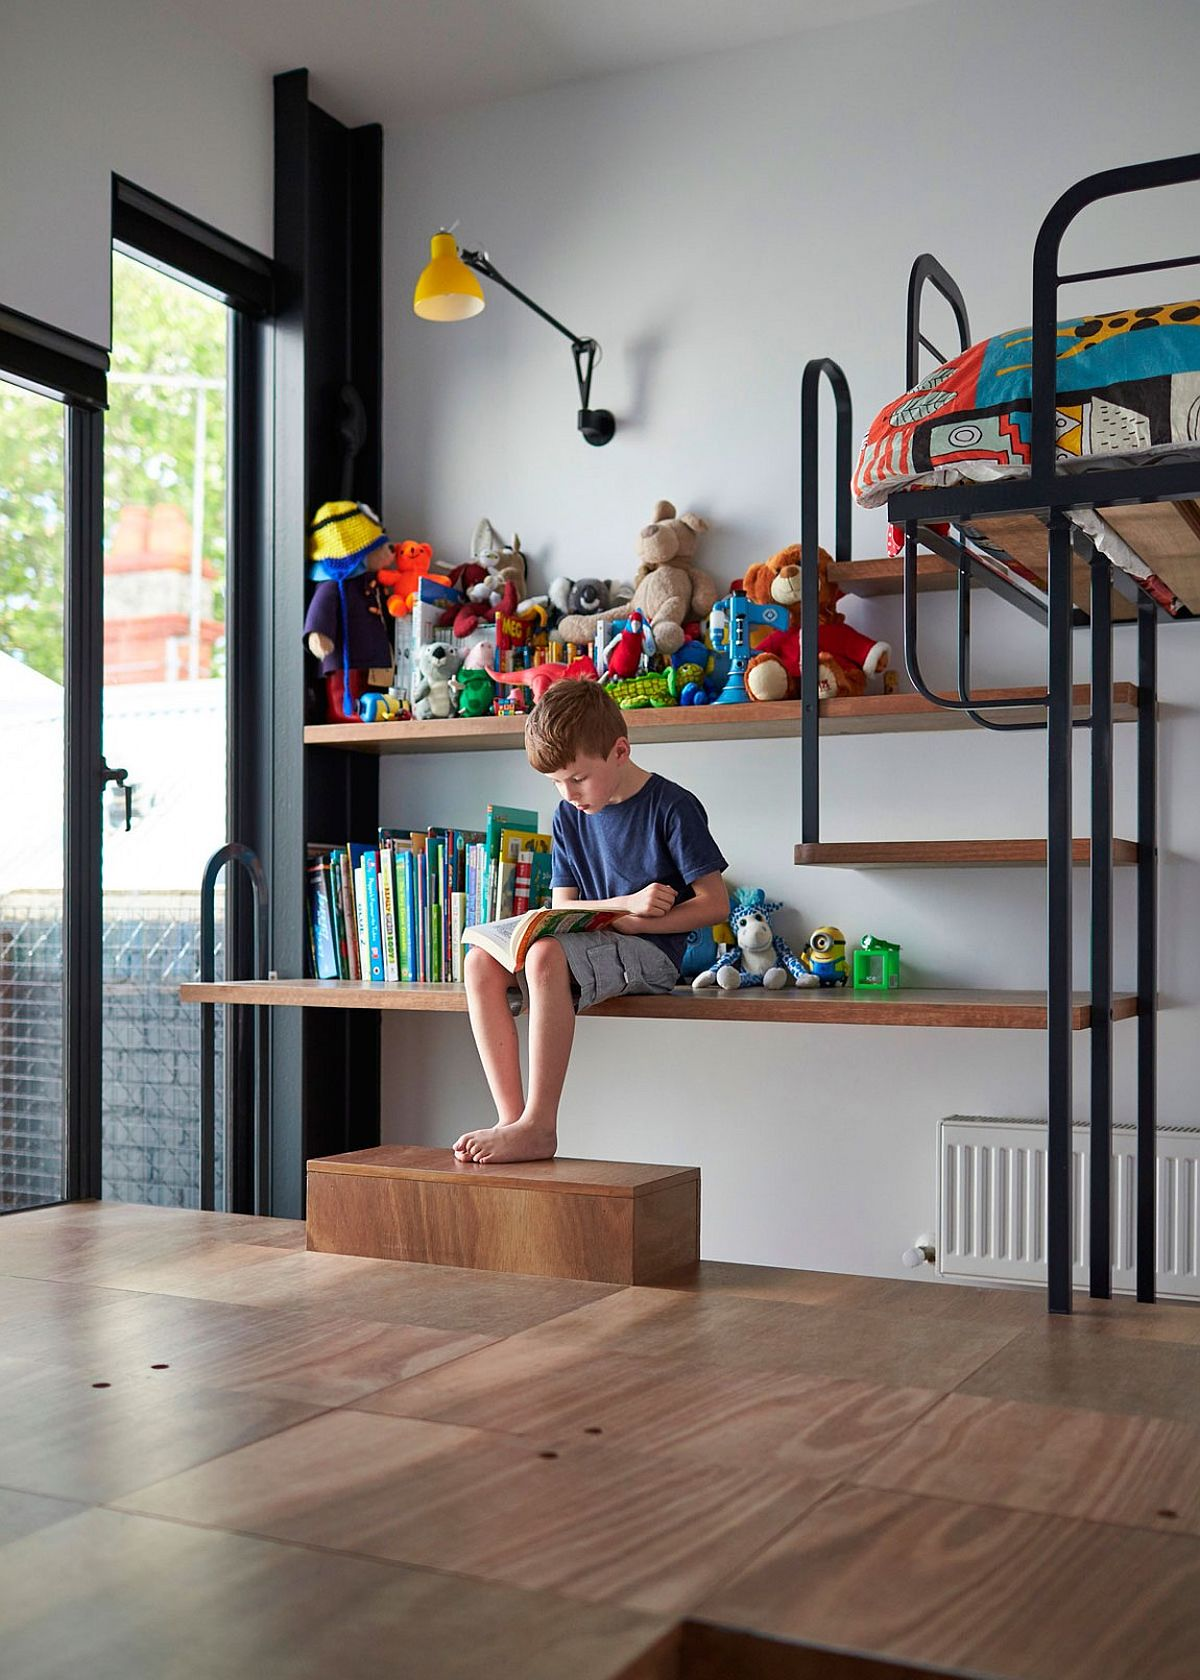 Multi-purpose, custom kids' room storage and display space